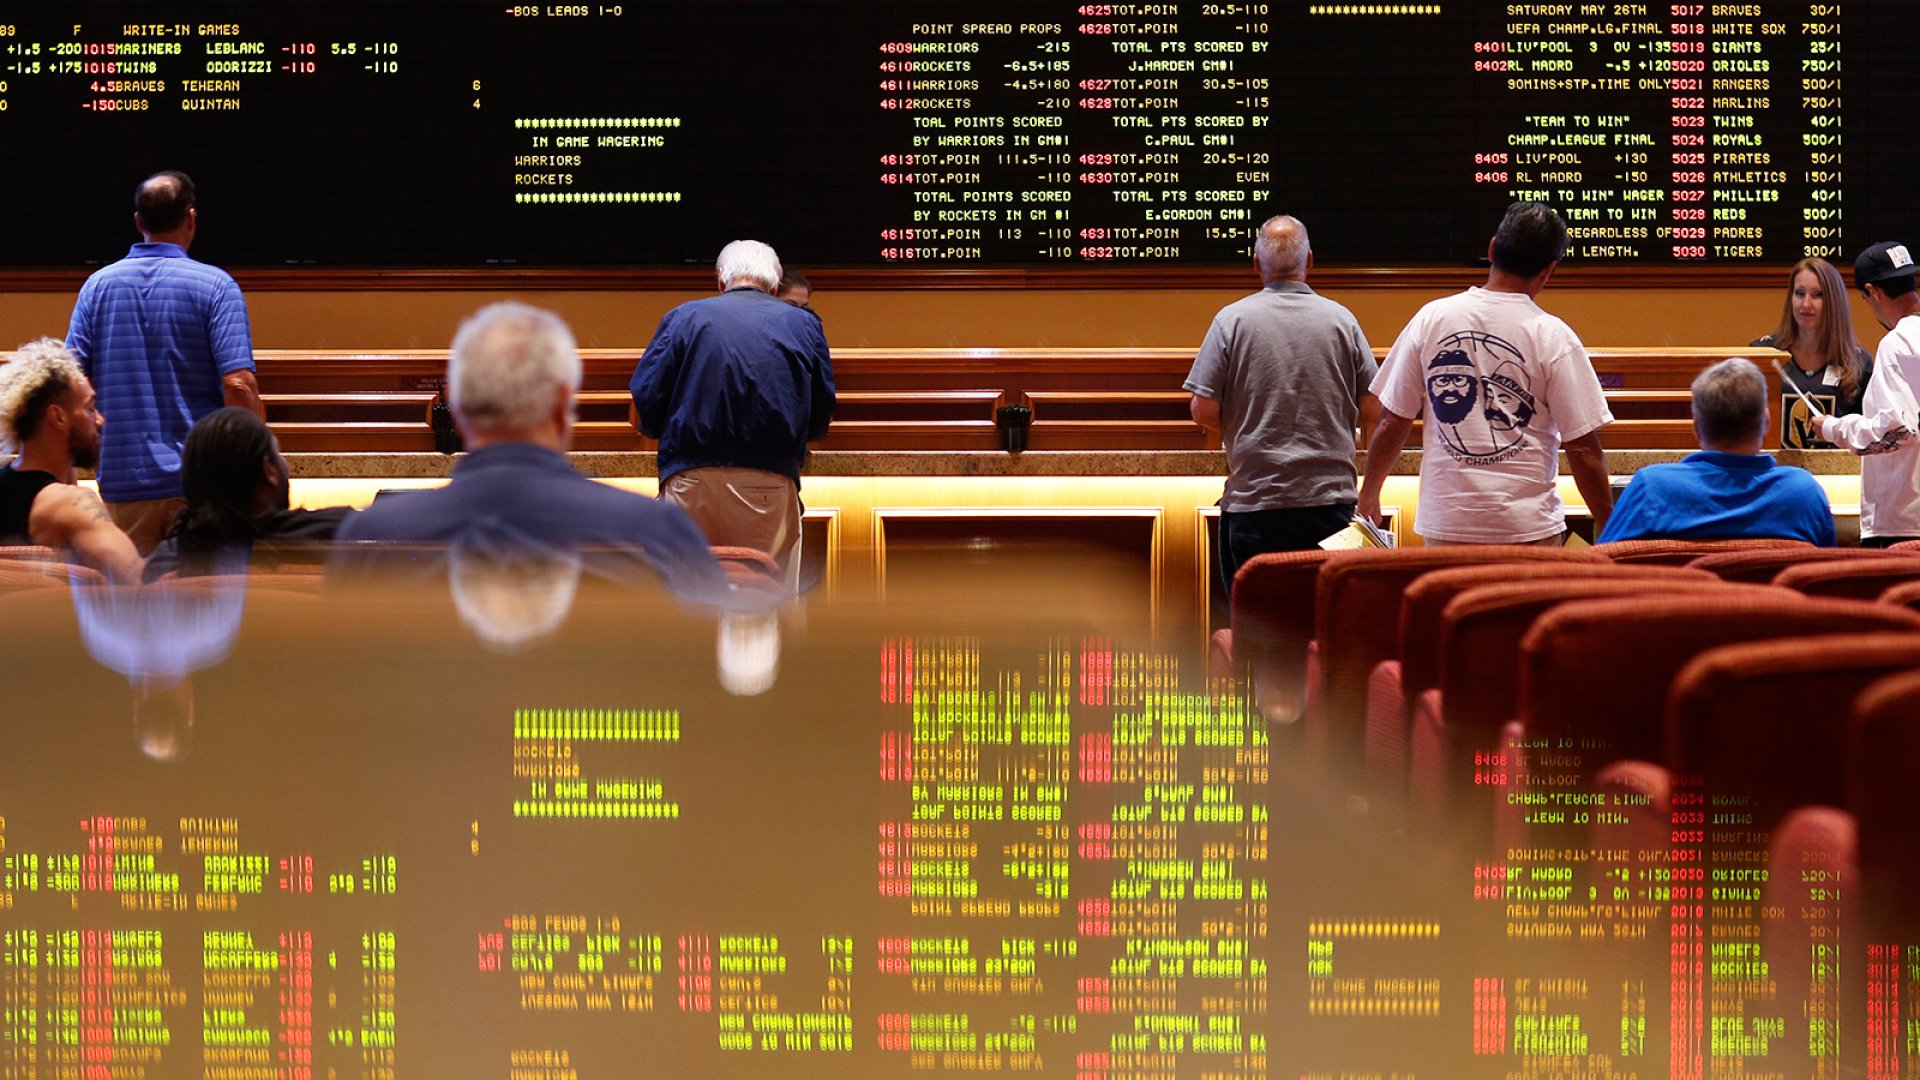 The sports betting industry is about to launch in states across the U.S. after the Supreme Court struck down a federal ban.